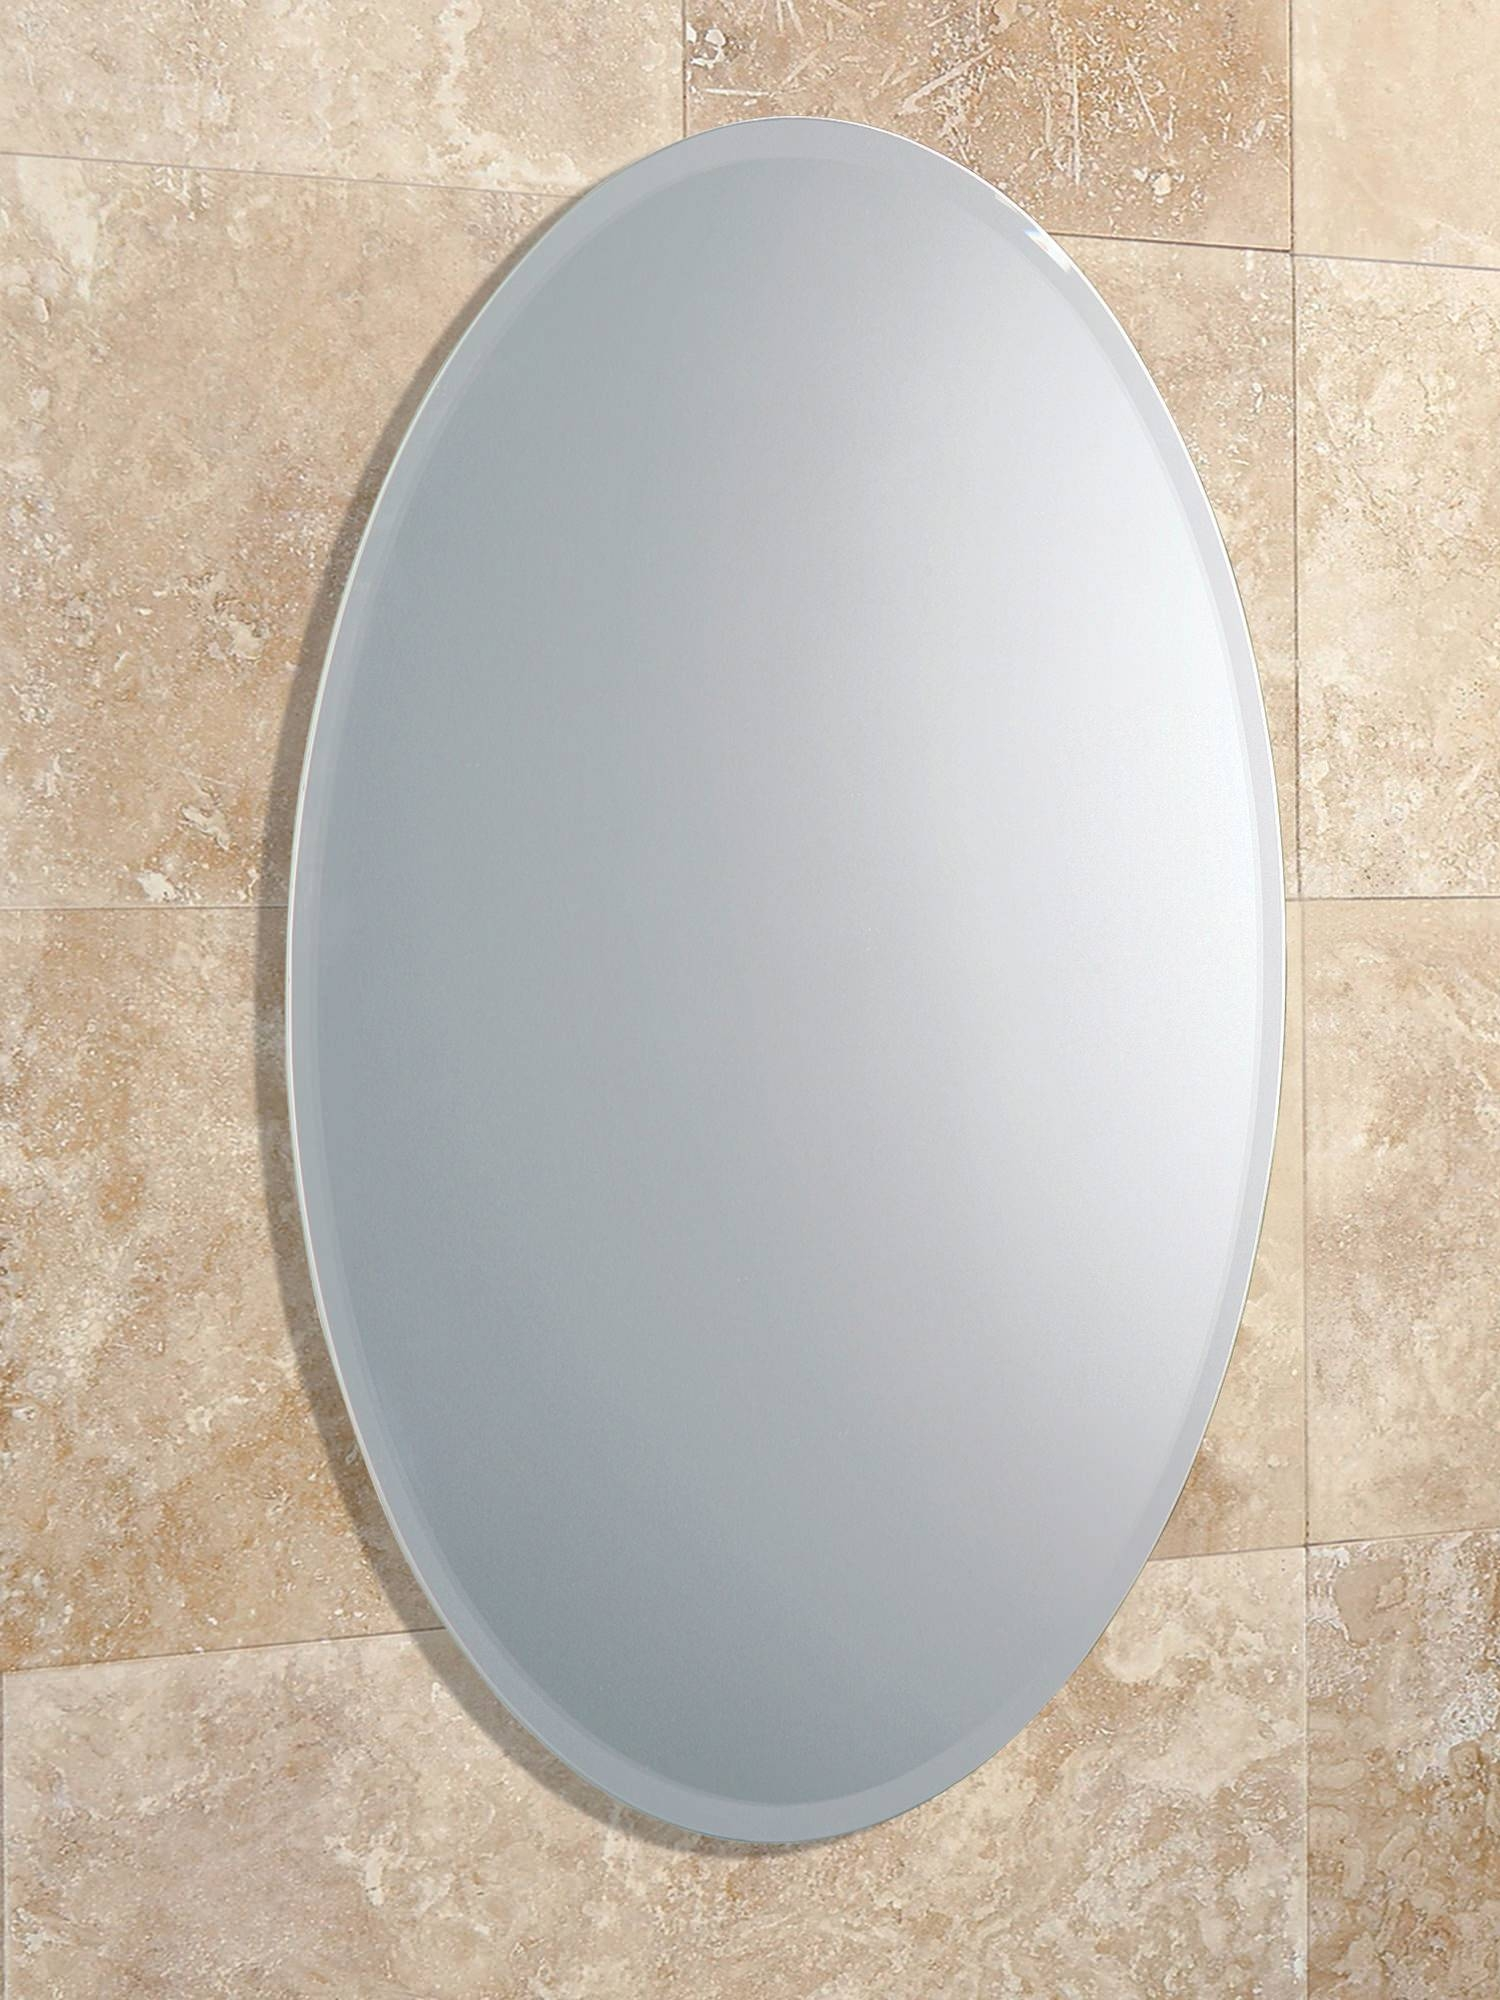 Hib Alfera Oval Shaped Mirror With Bevelled Edge | 61643000 With Regard To Bevelled Oval Mirrors (View 4 of 15)